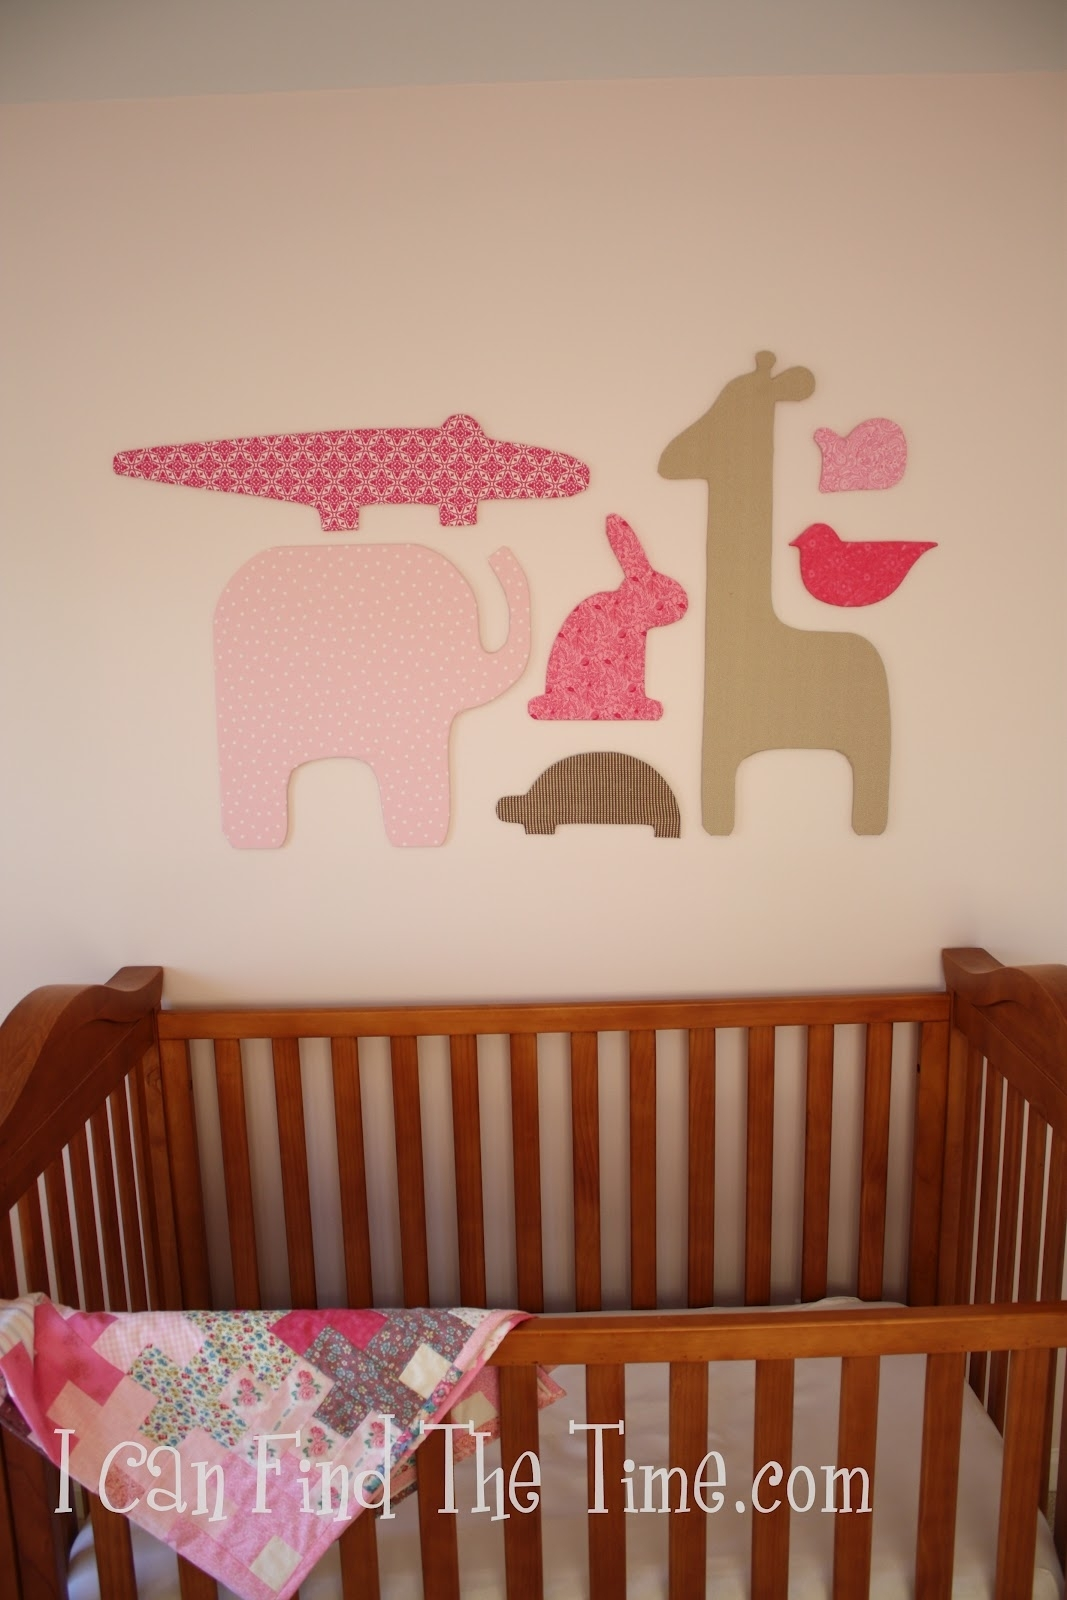 Easy Fabric Silhouette Wall Art With Regard To Most Up To Date Fabric Animal Silhouette Wall Art (View 7 of 15)